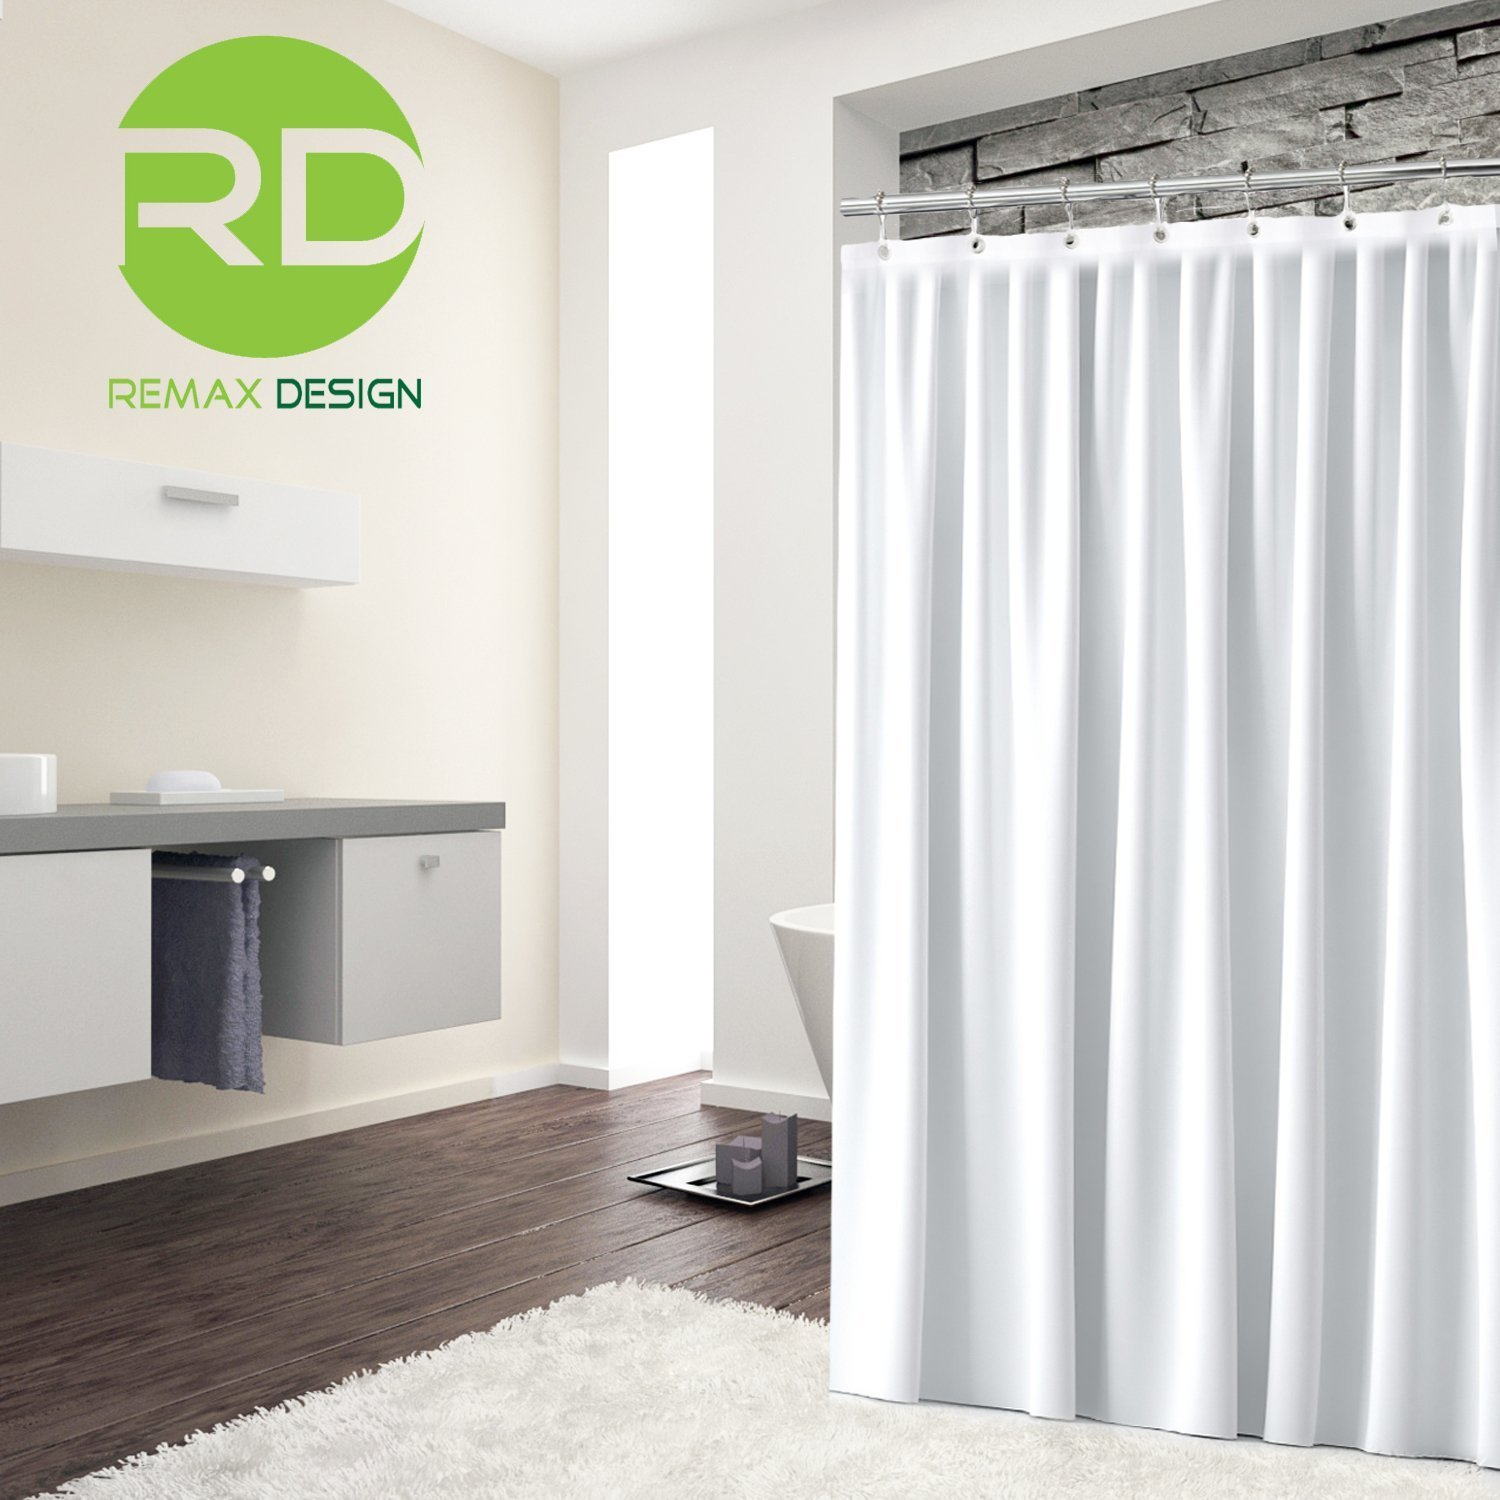 Curtains with hooks on the back 187 home design 2017 - Amazon Com Mildew Resistant Fabric Shower Curtain 72x72 White Polyester Curtain For Bathroom Waterproof Odorless Eco Friendly Anti Bacterial Heavy